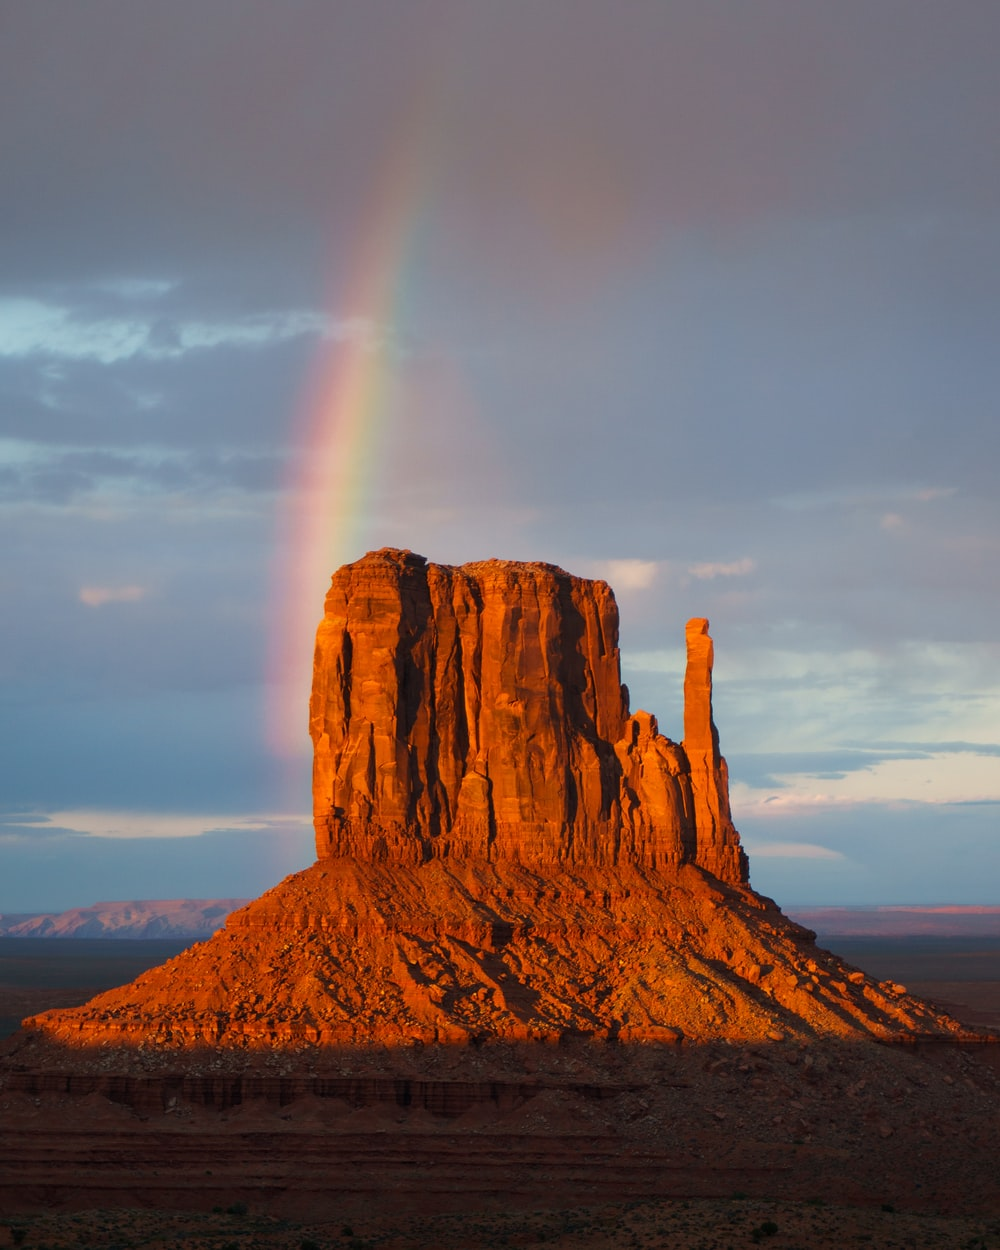 Rainbow over rock formation during daytime